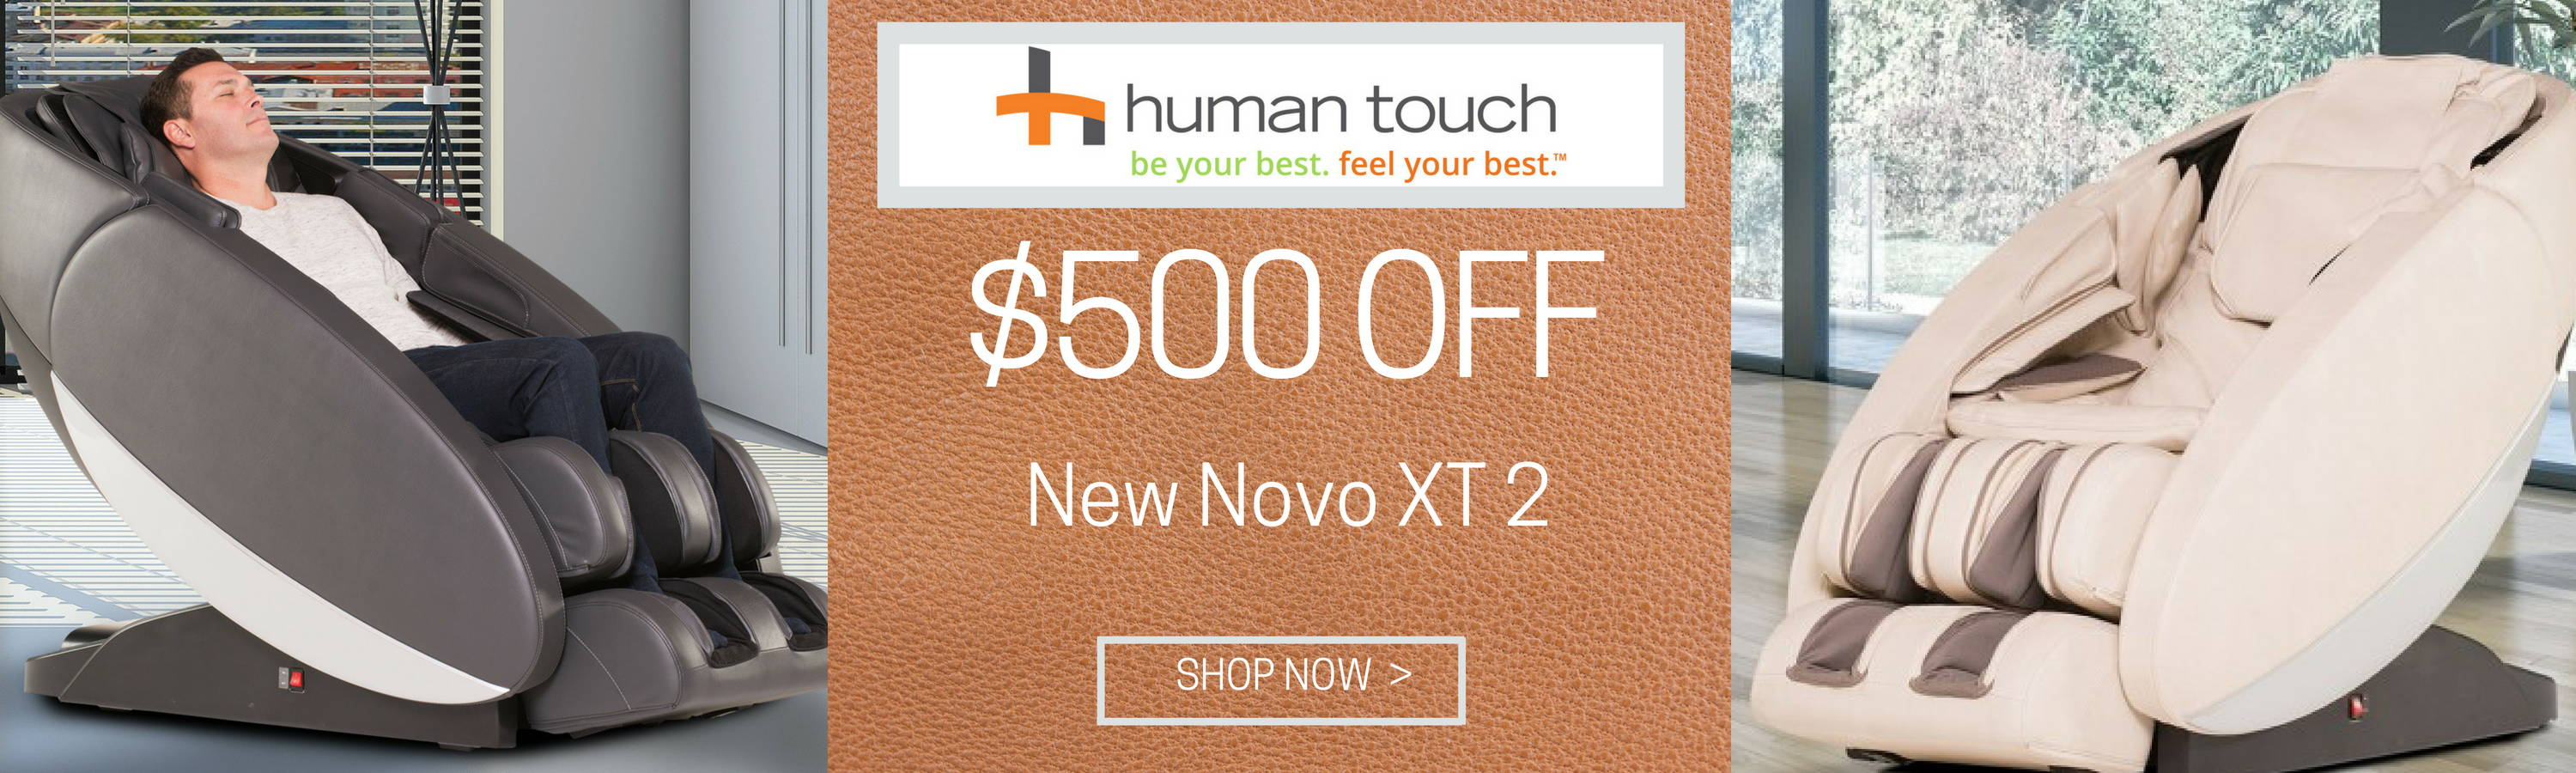 $500 Off Novo XT 2 Massage Chair > Shop Now